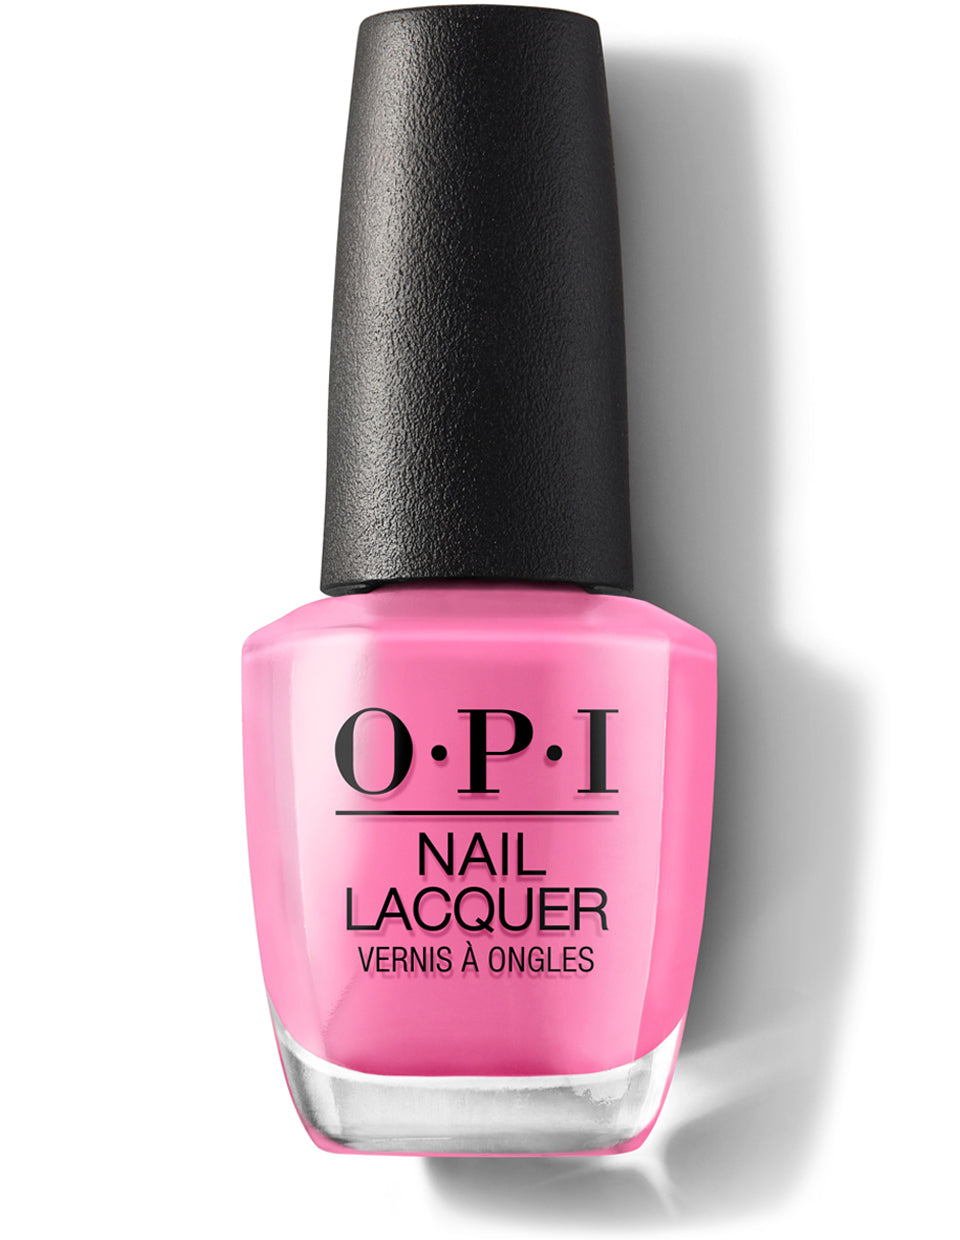 OPI Nail Lacquer Two-Timing The Zones (15ml)